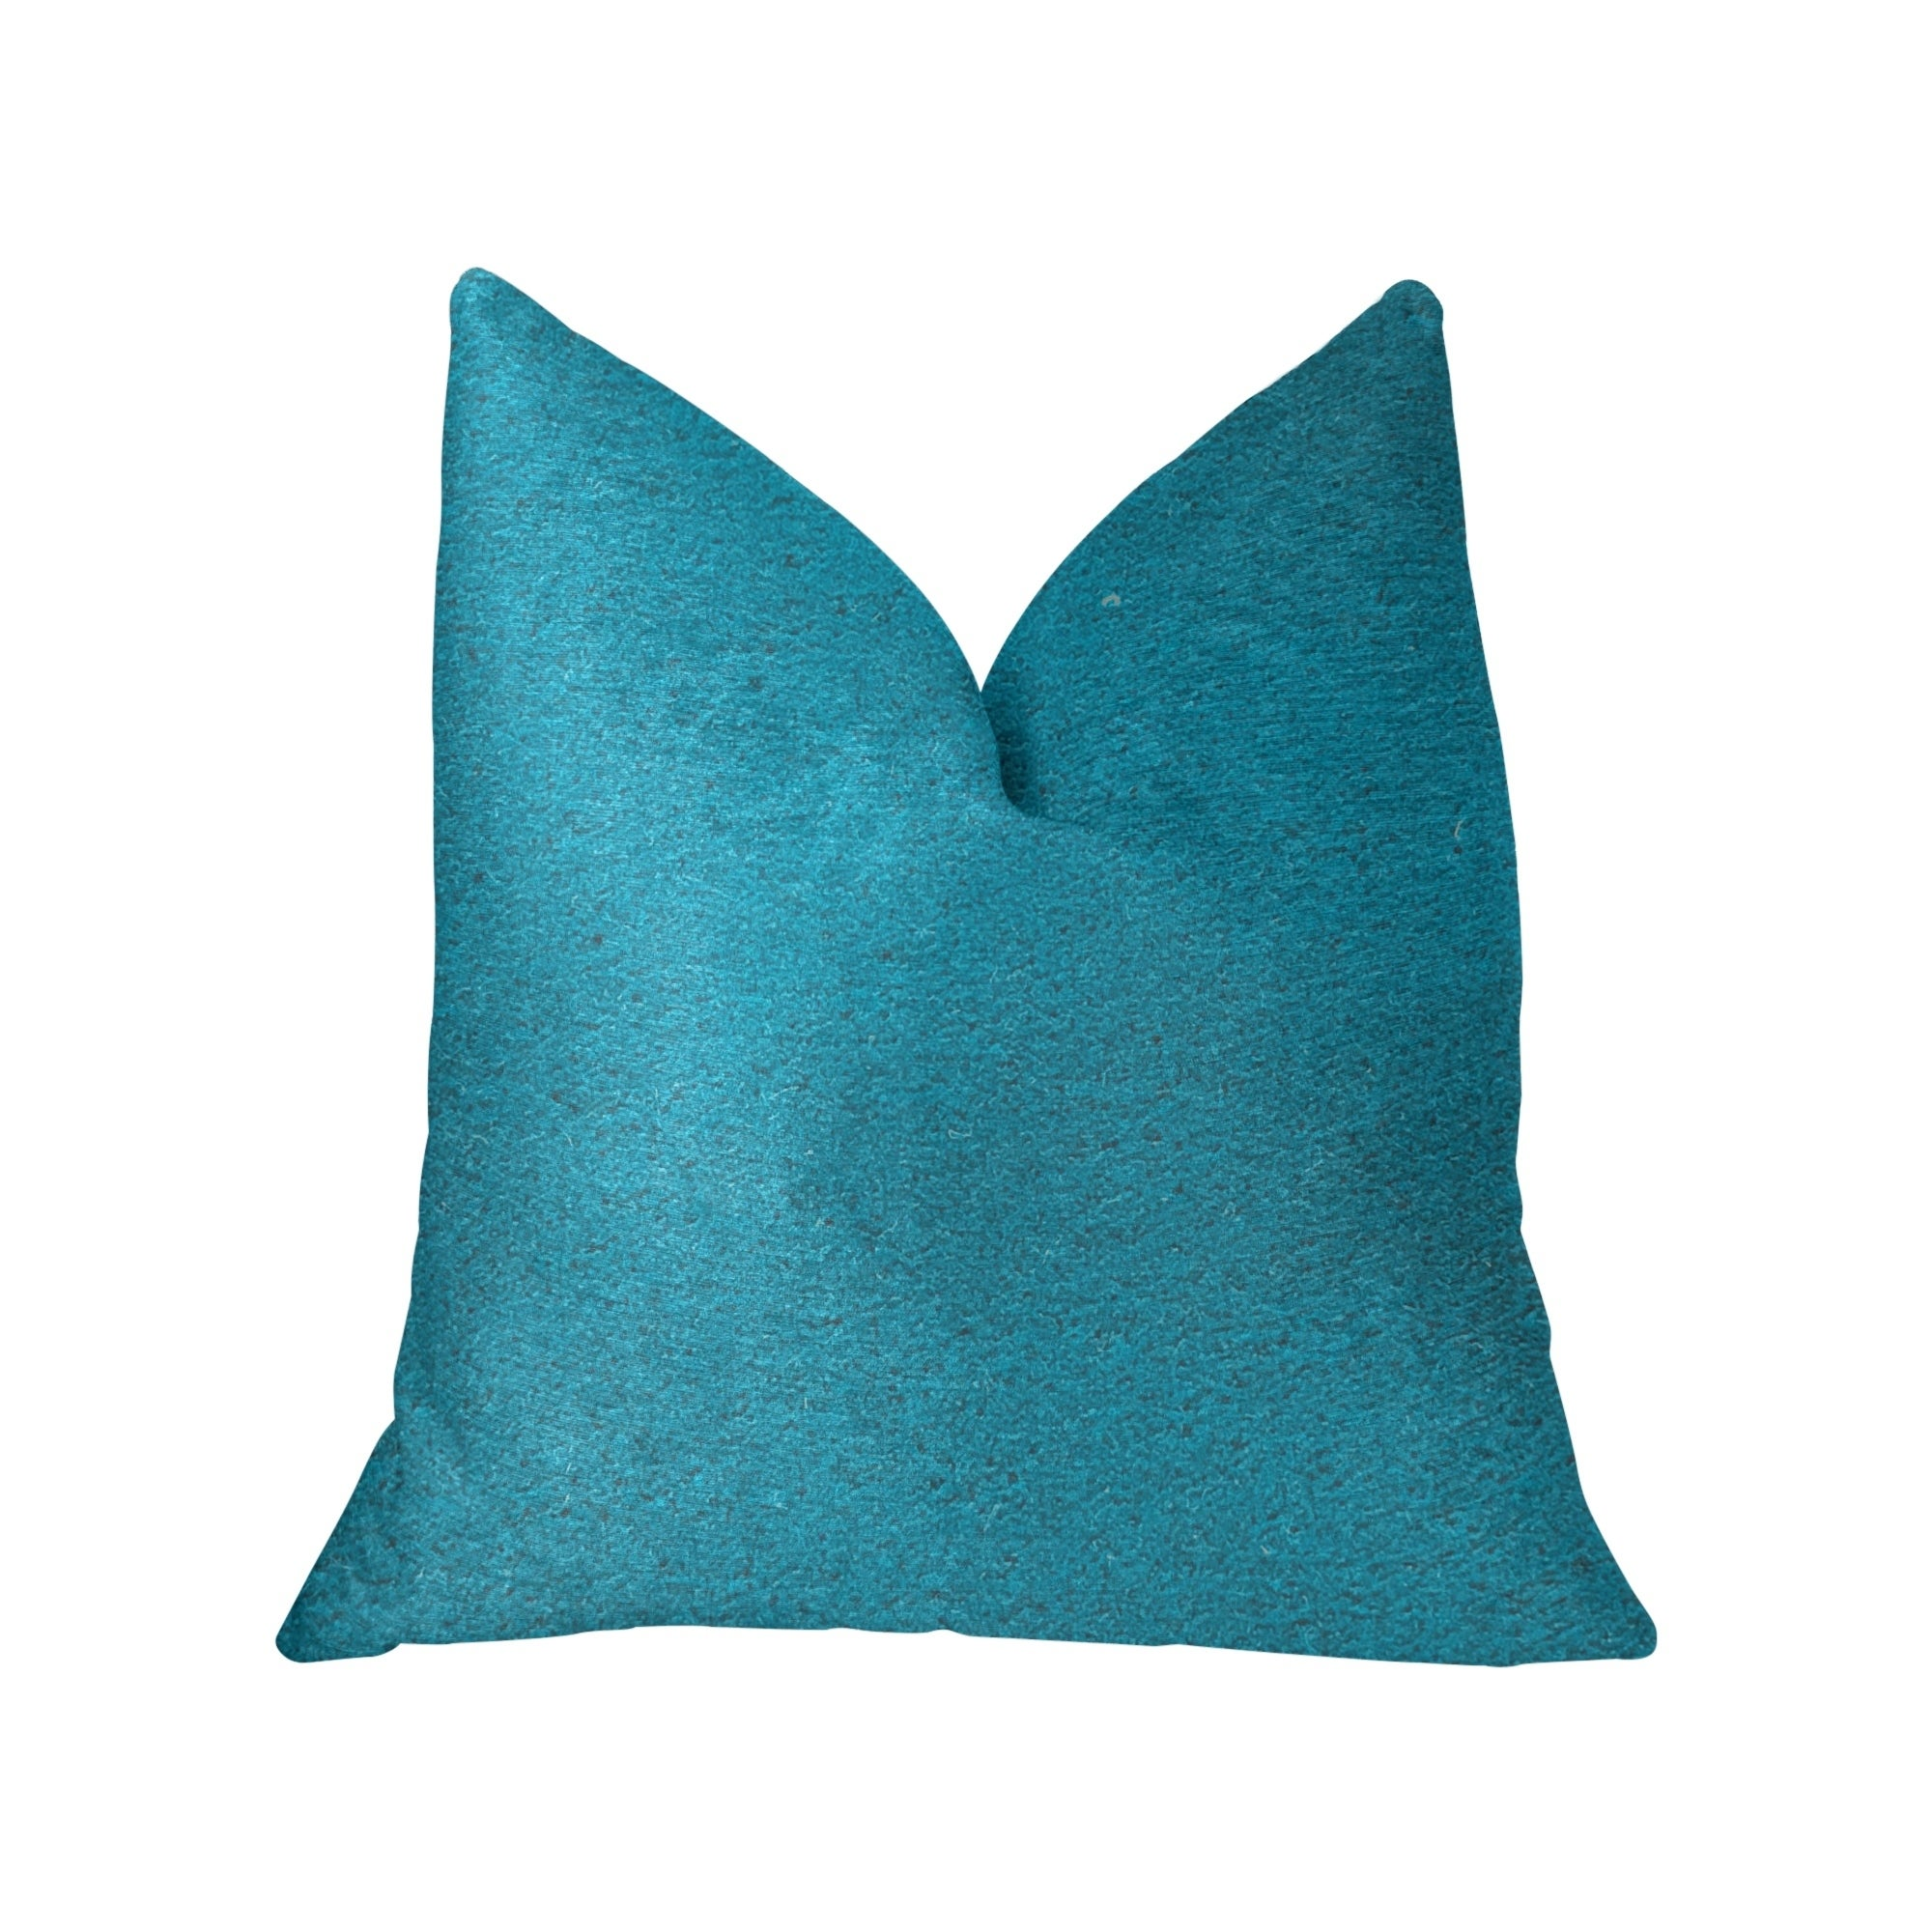 Plutus Aquamarine Velvet Turquoise Luxury Throw Pillow Overstock 20979088